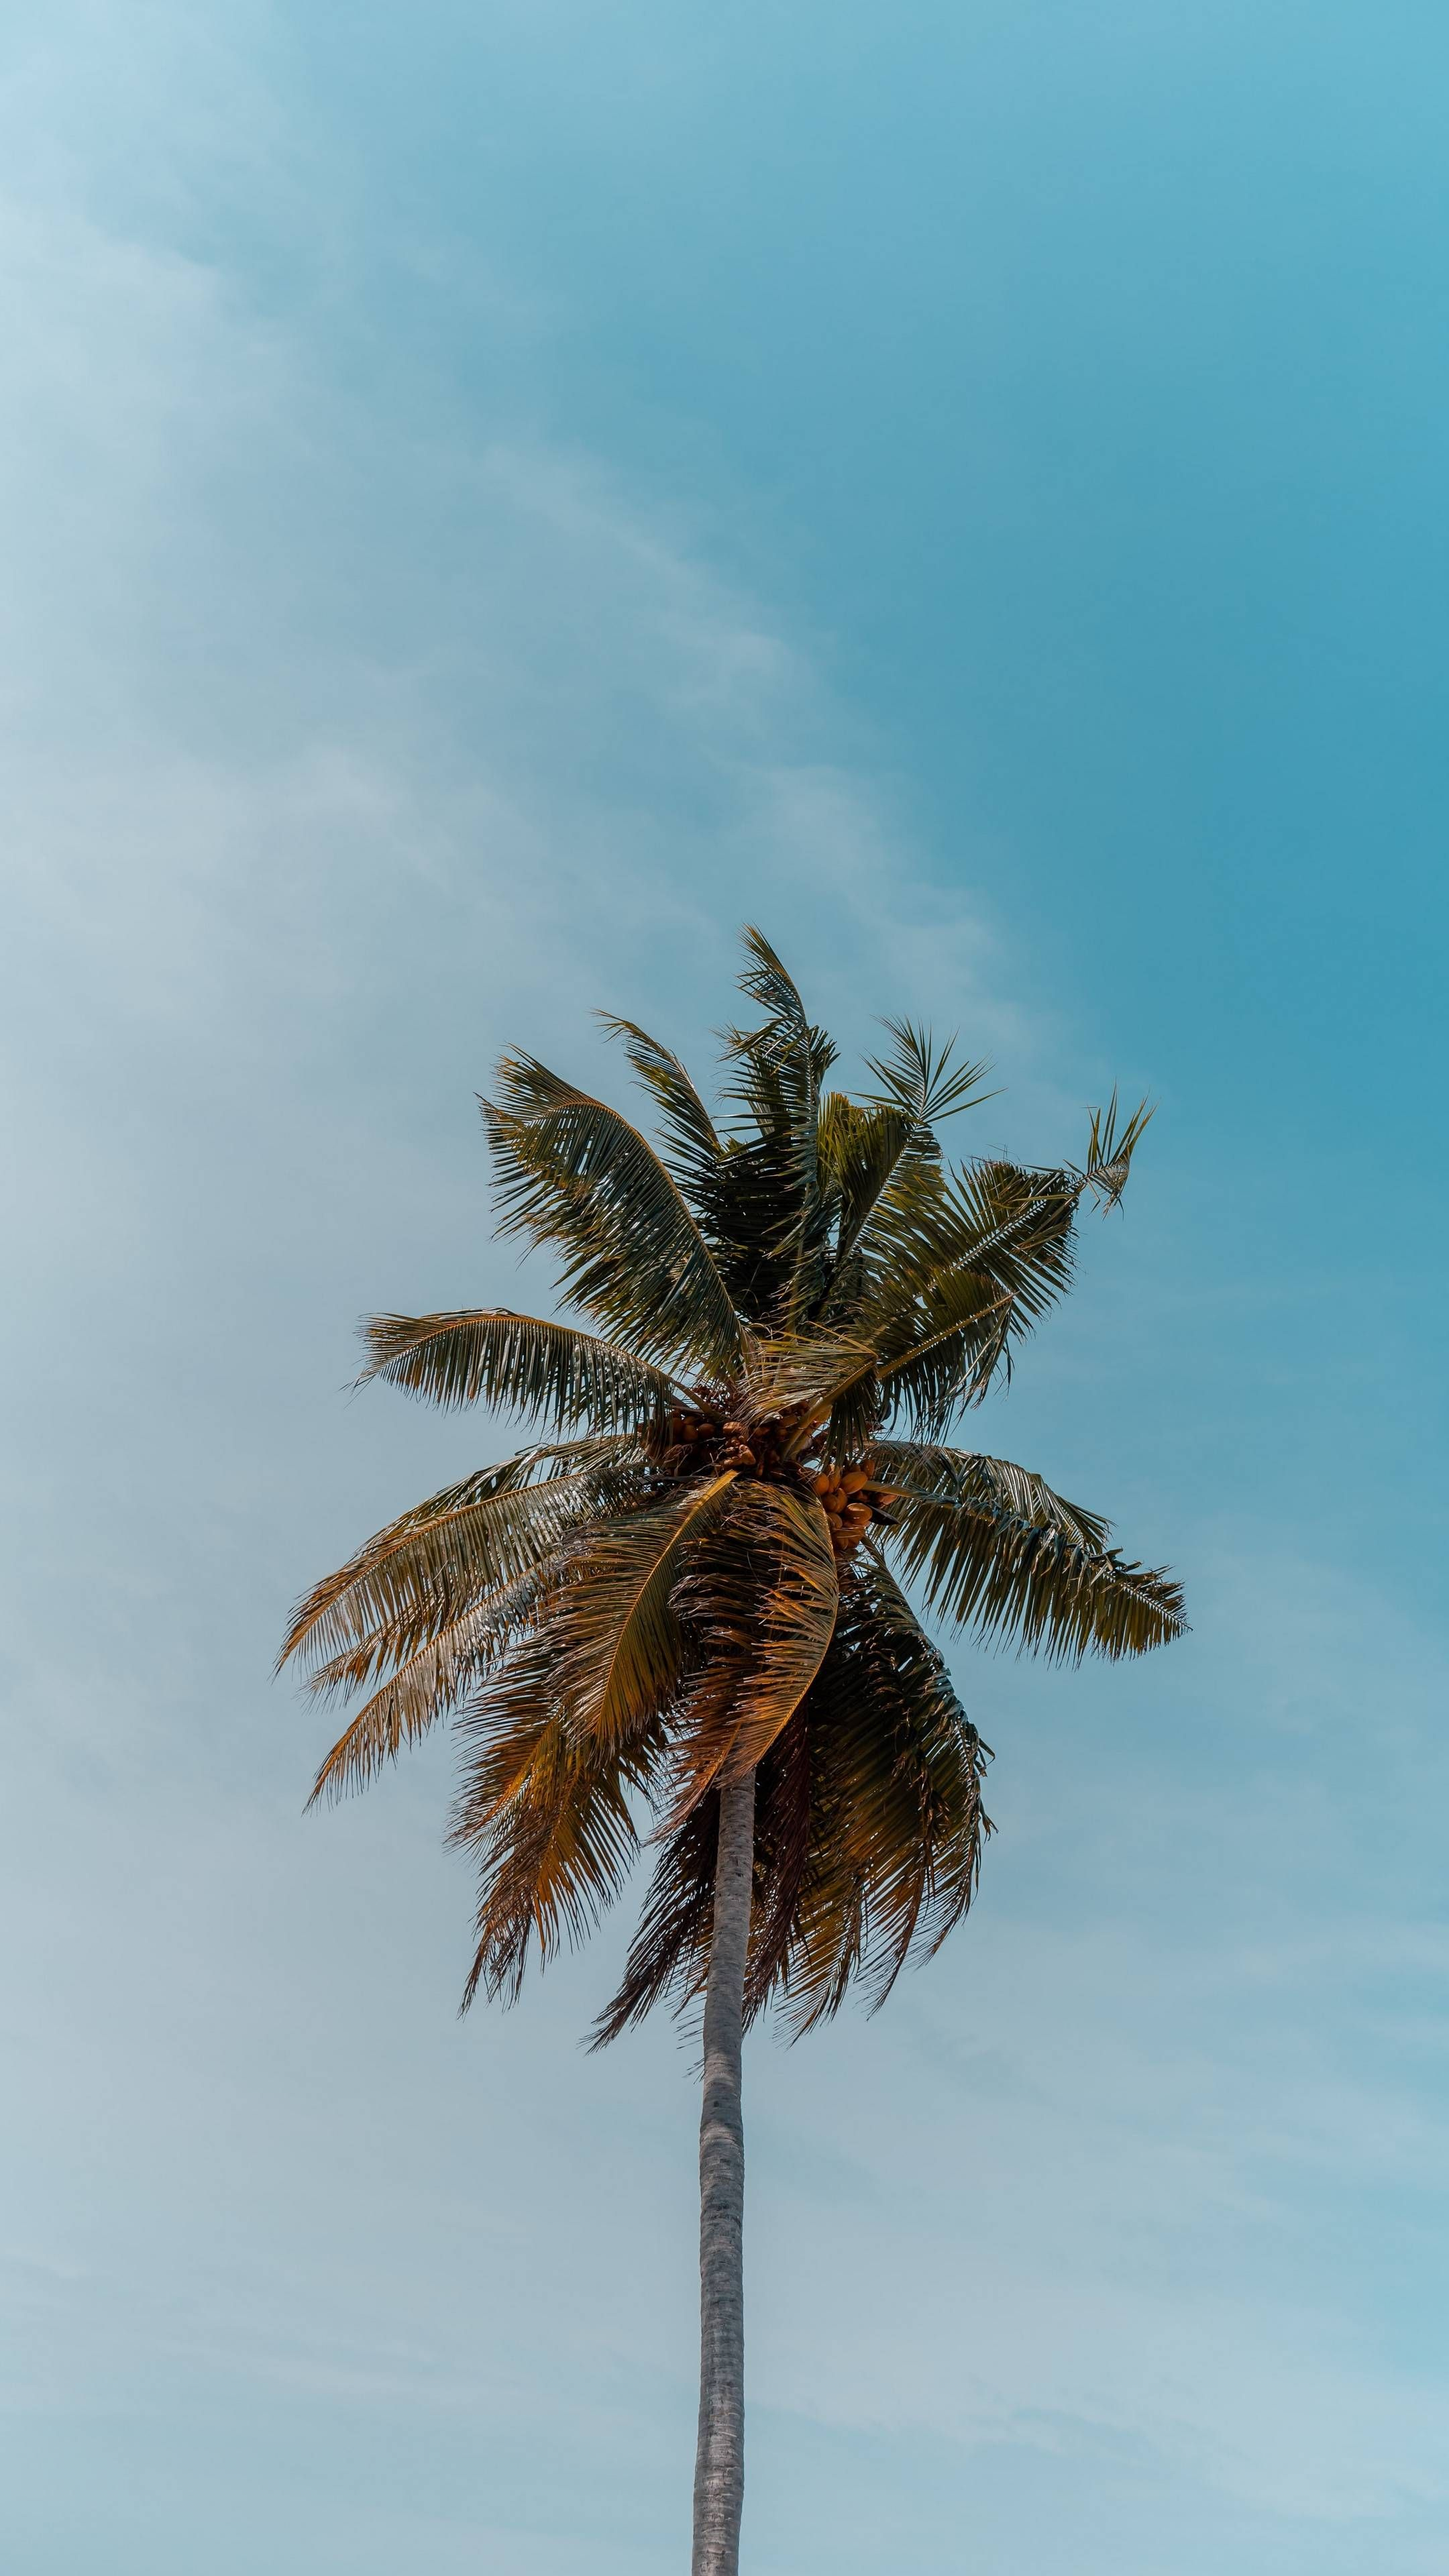 Download Iphone Xs Iphone Xs Max Iphone Xr Hd Wallpapers Palm Tree Tree Crown Top Branches Tree Wallpaper Iphone Palm Trees Wallpaper Blue Sky Wallpaper